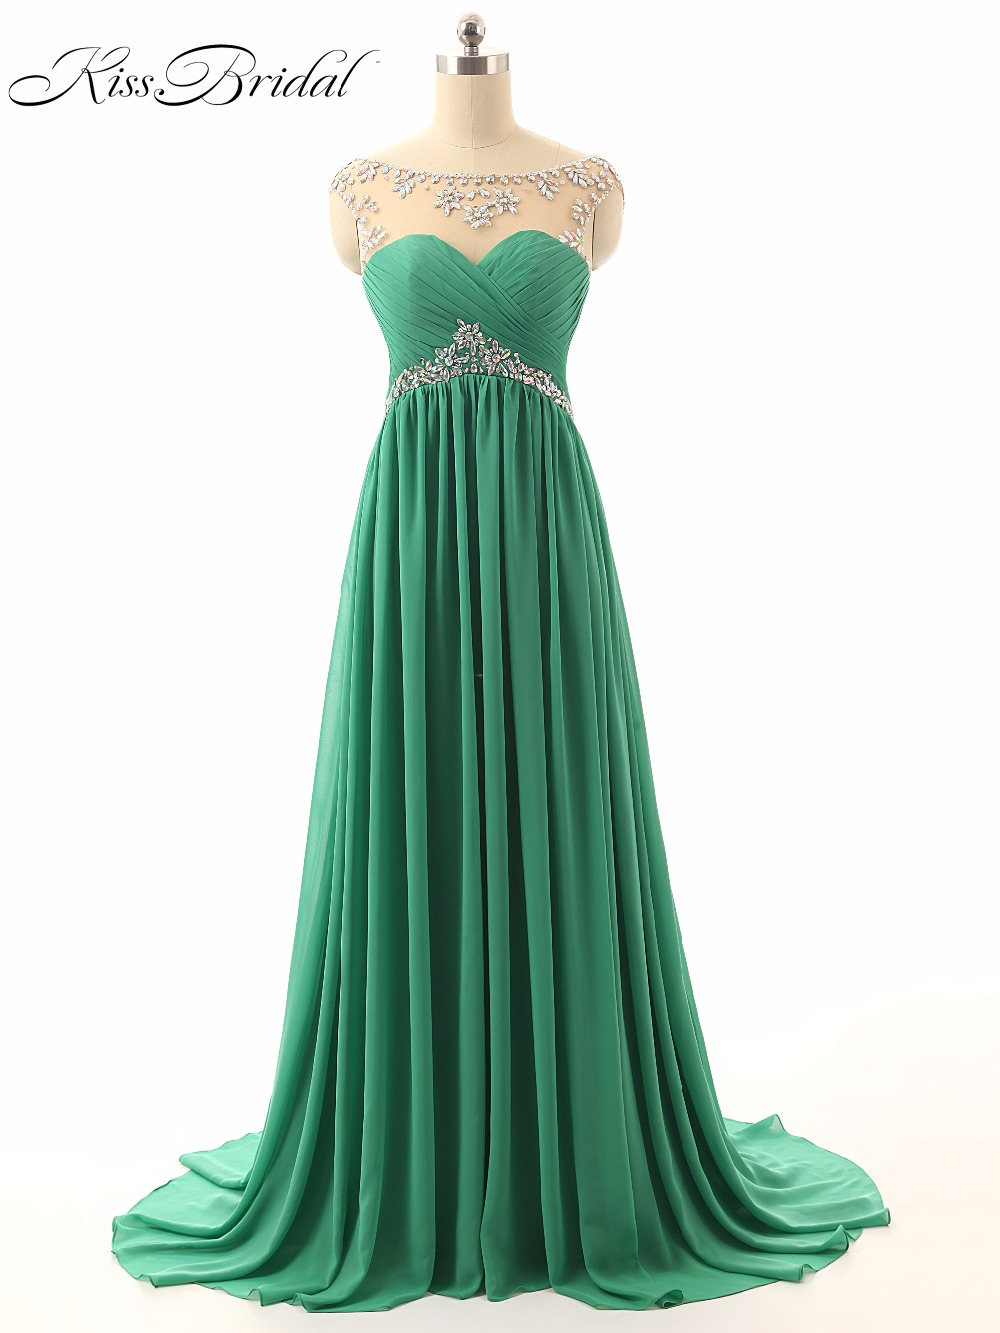 A-Line Beaded   Prom     Dresses   2017 Scoop Neck Sleeveless Lace Up Back Robe De Soiree Elegant Long Evening Party   Dresses